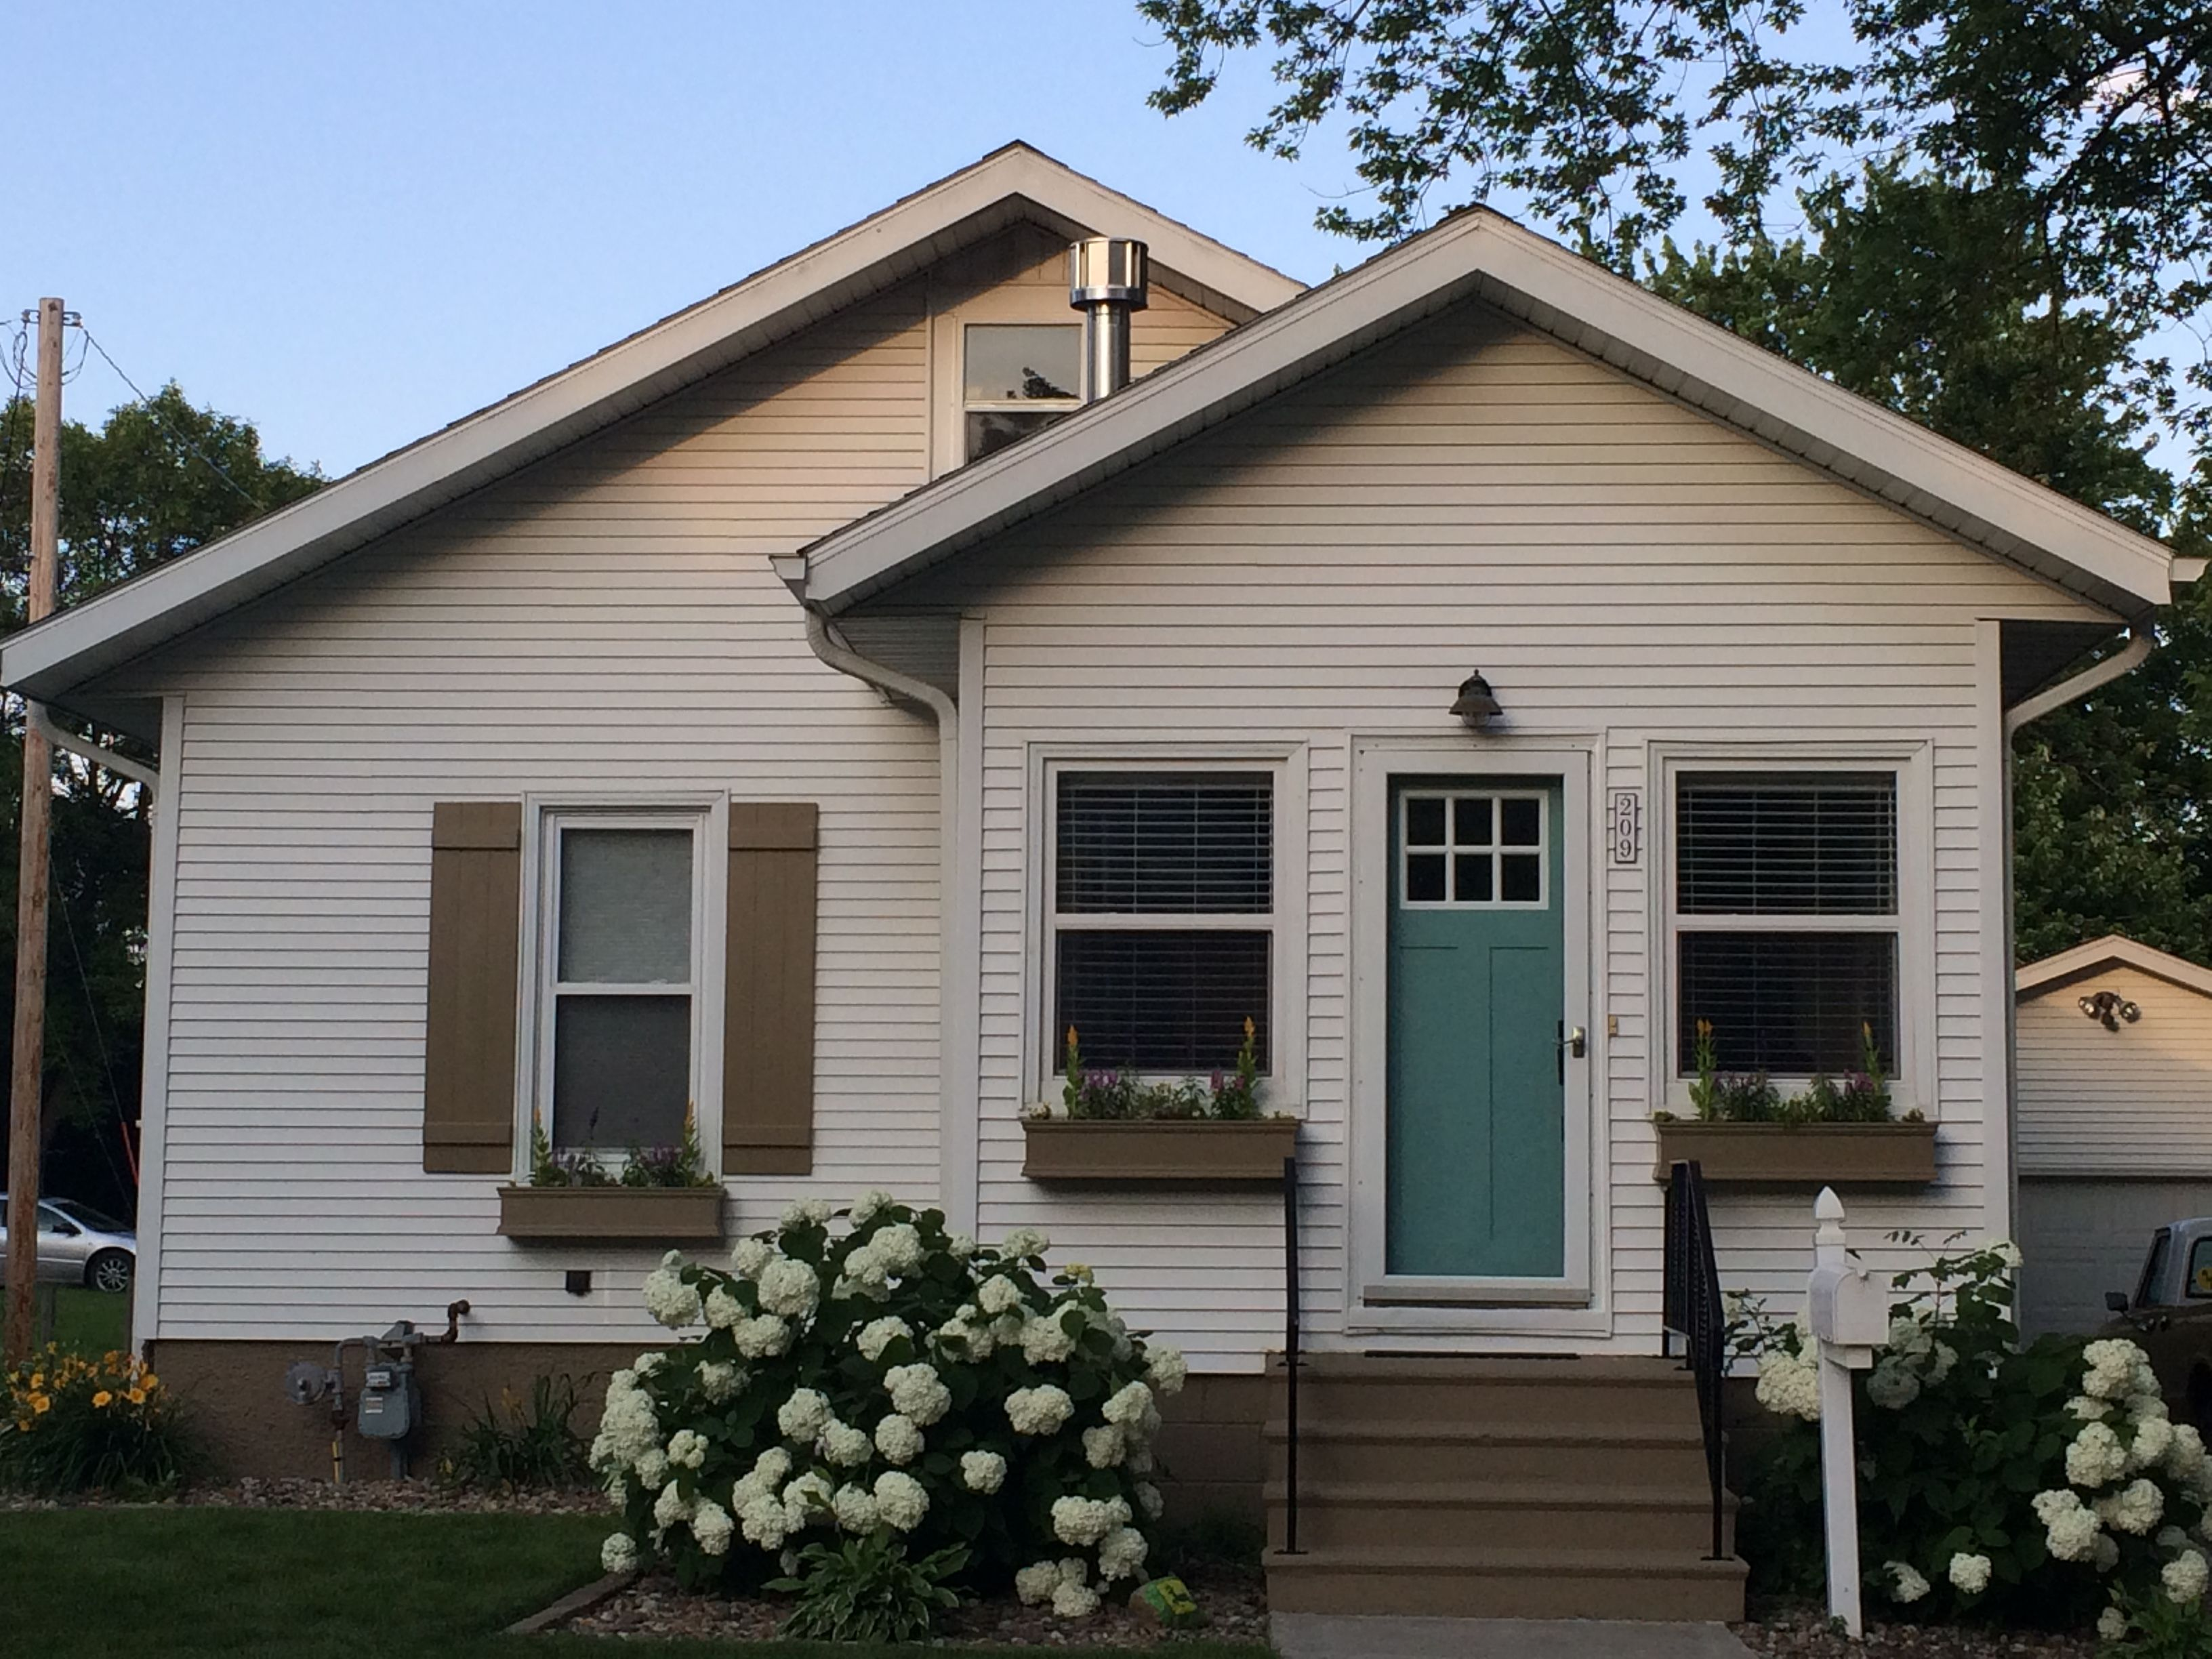 Exterior house colors cottage - Just Gave My House A Facelift Door Paint Color Drizzle By Sherwin Williams Window